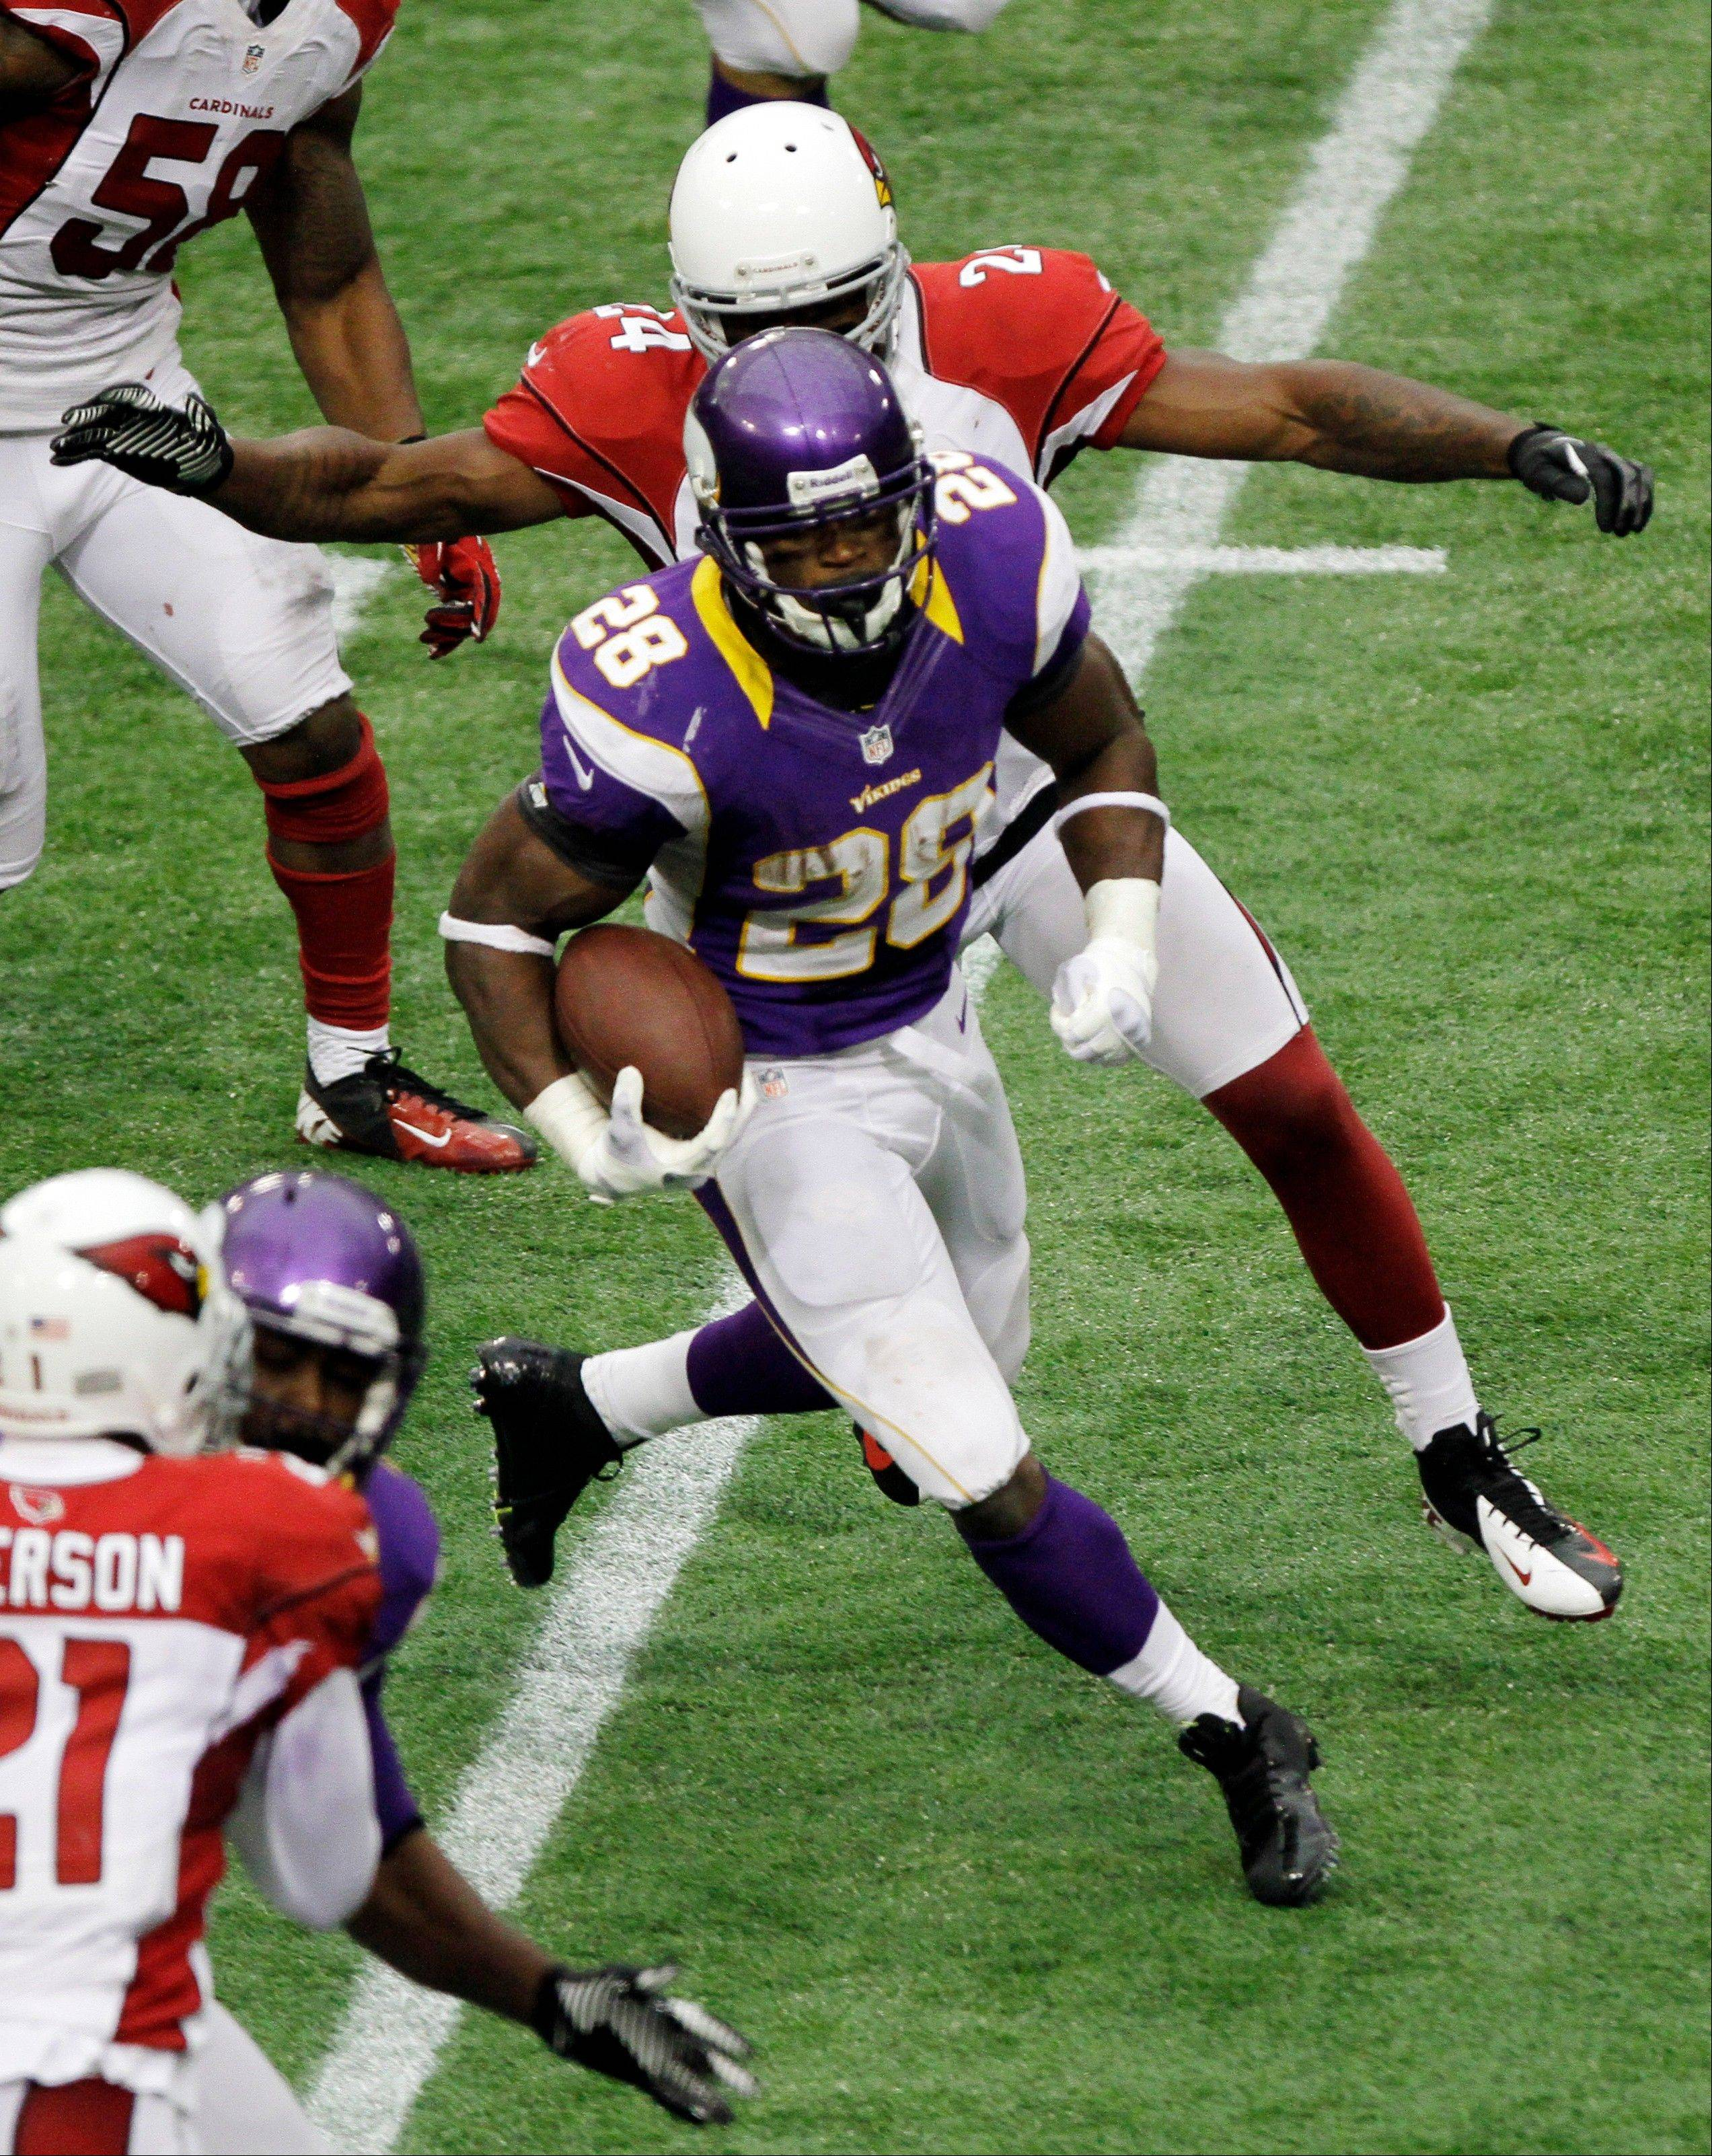 Minnesota Vikings running back Adrian Peterson rushes against Arizona Cardinals strong safety Adrian Wilson in the second half of Sunday's game in Minneapolis.